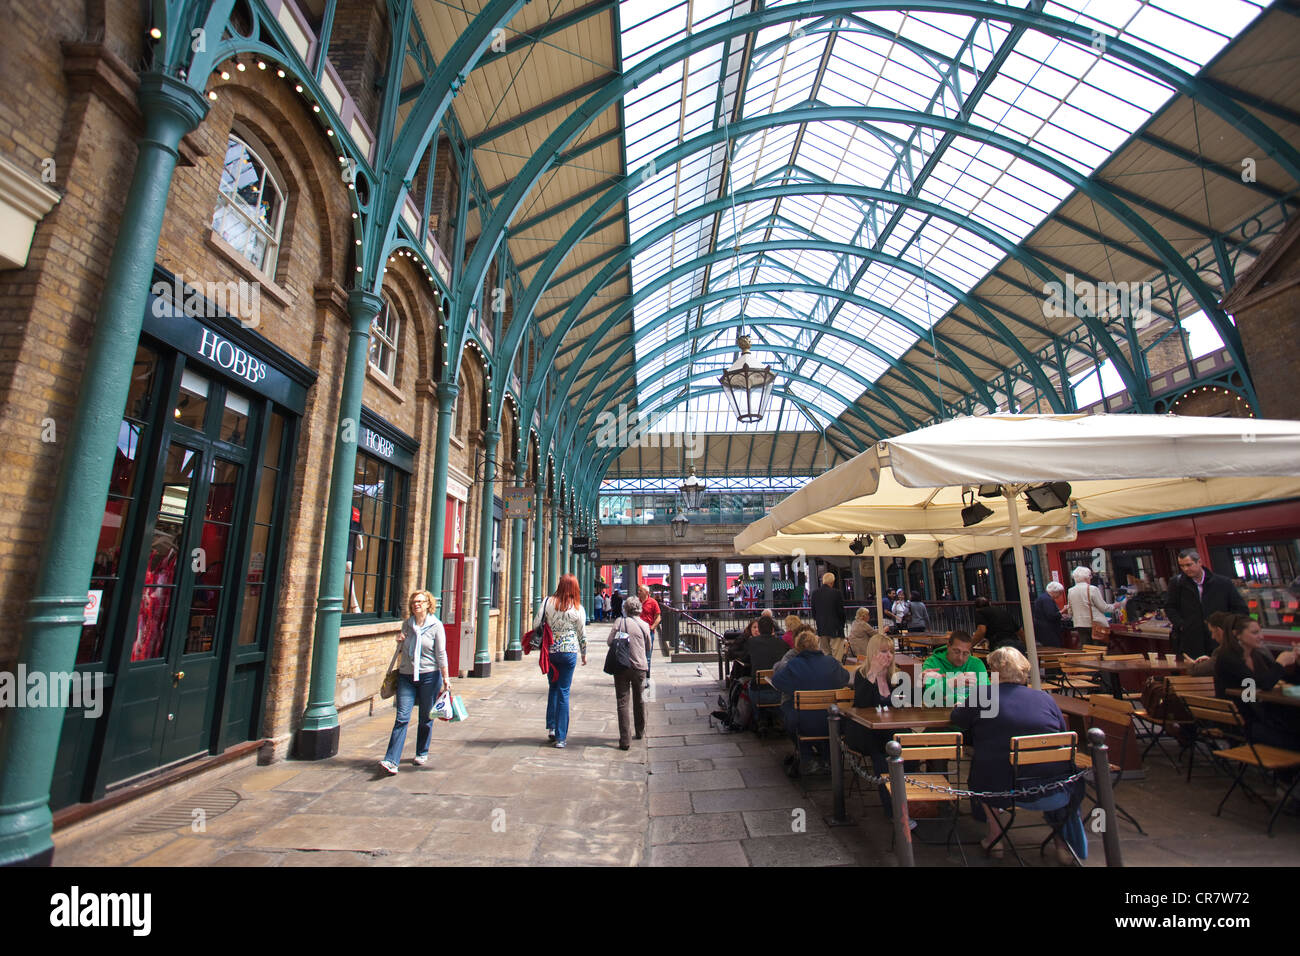 Covent Garden Indoor market, West End shopping centre associated with Royal Opera House, Central London, England, - Stock Image